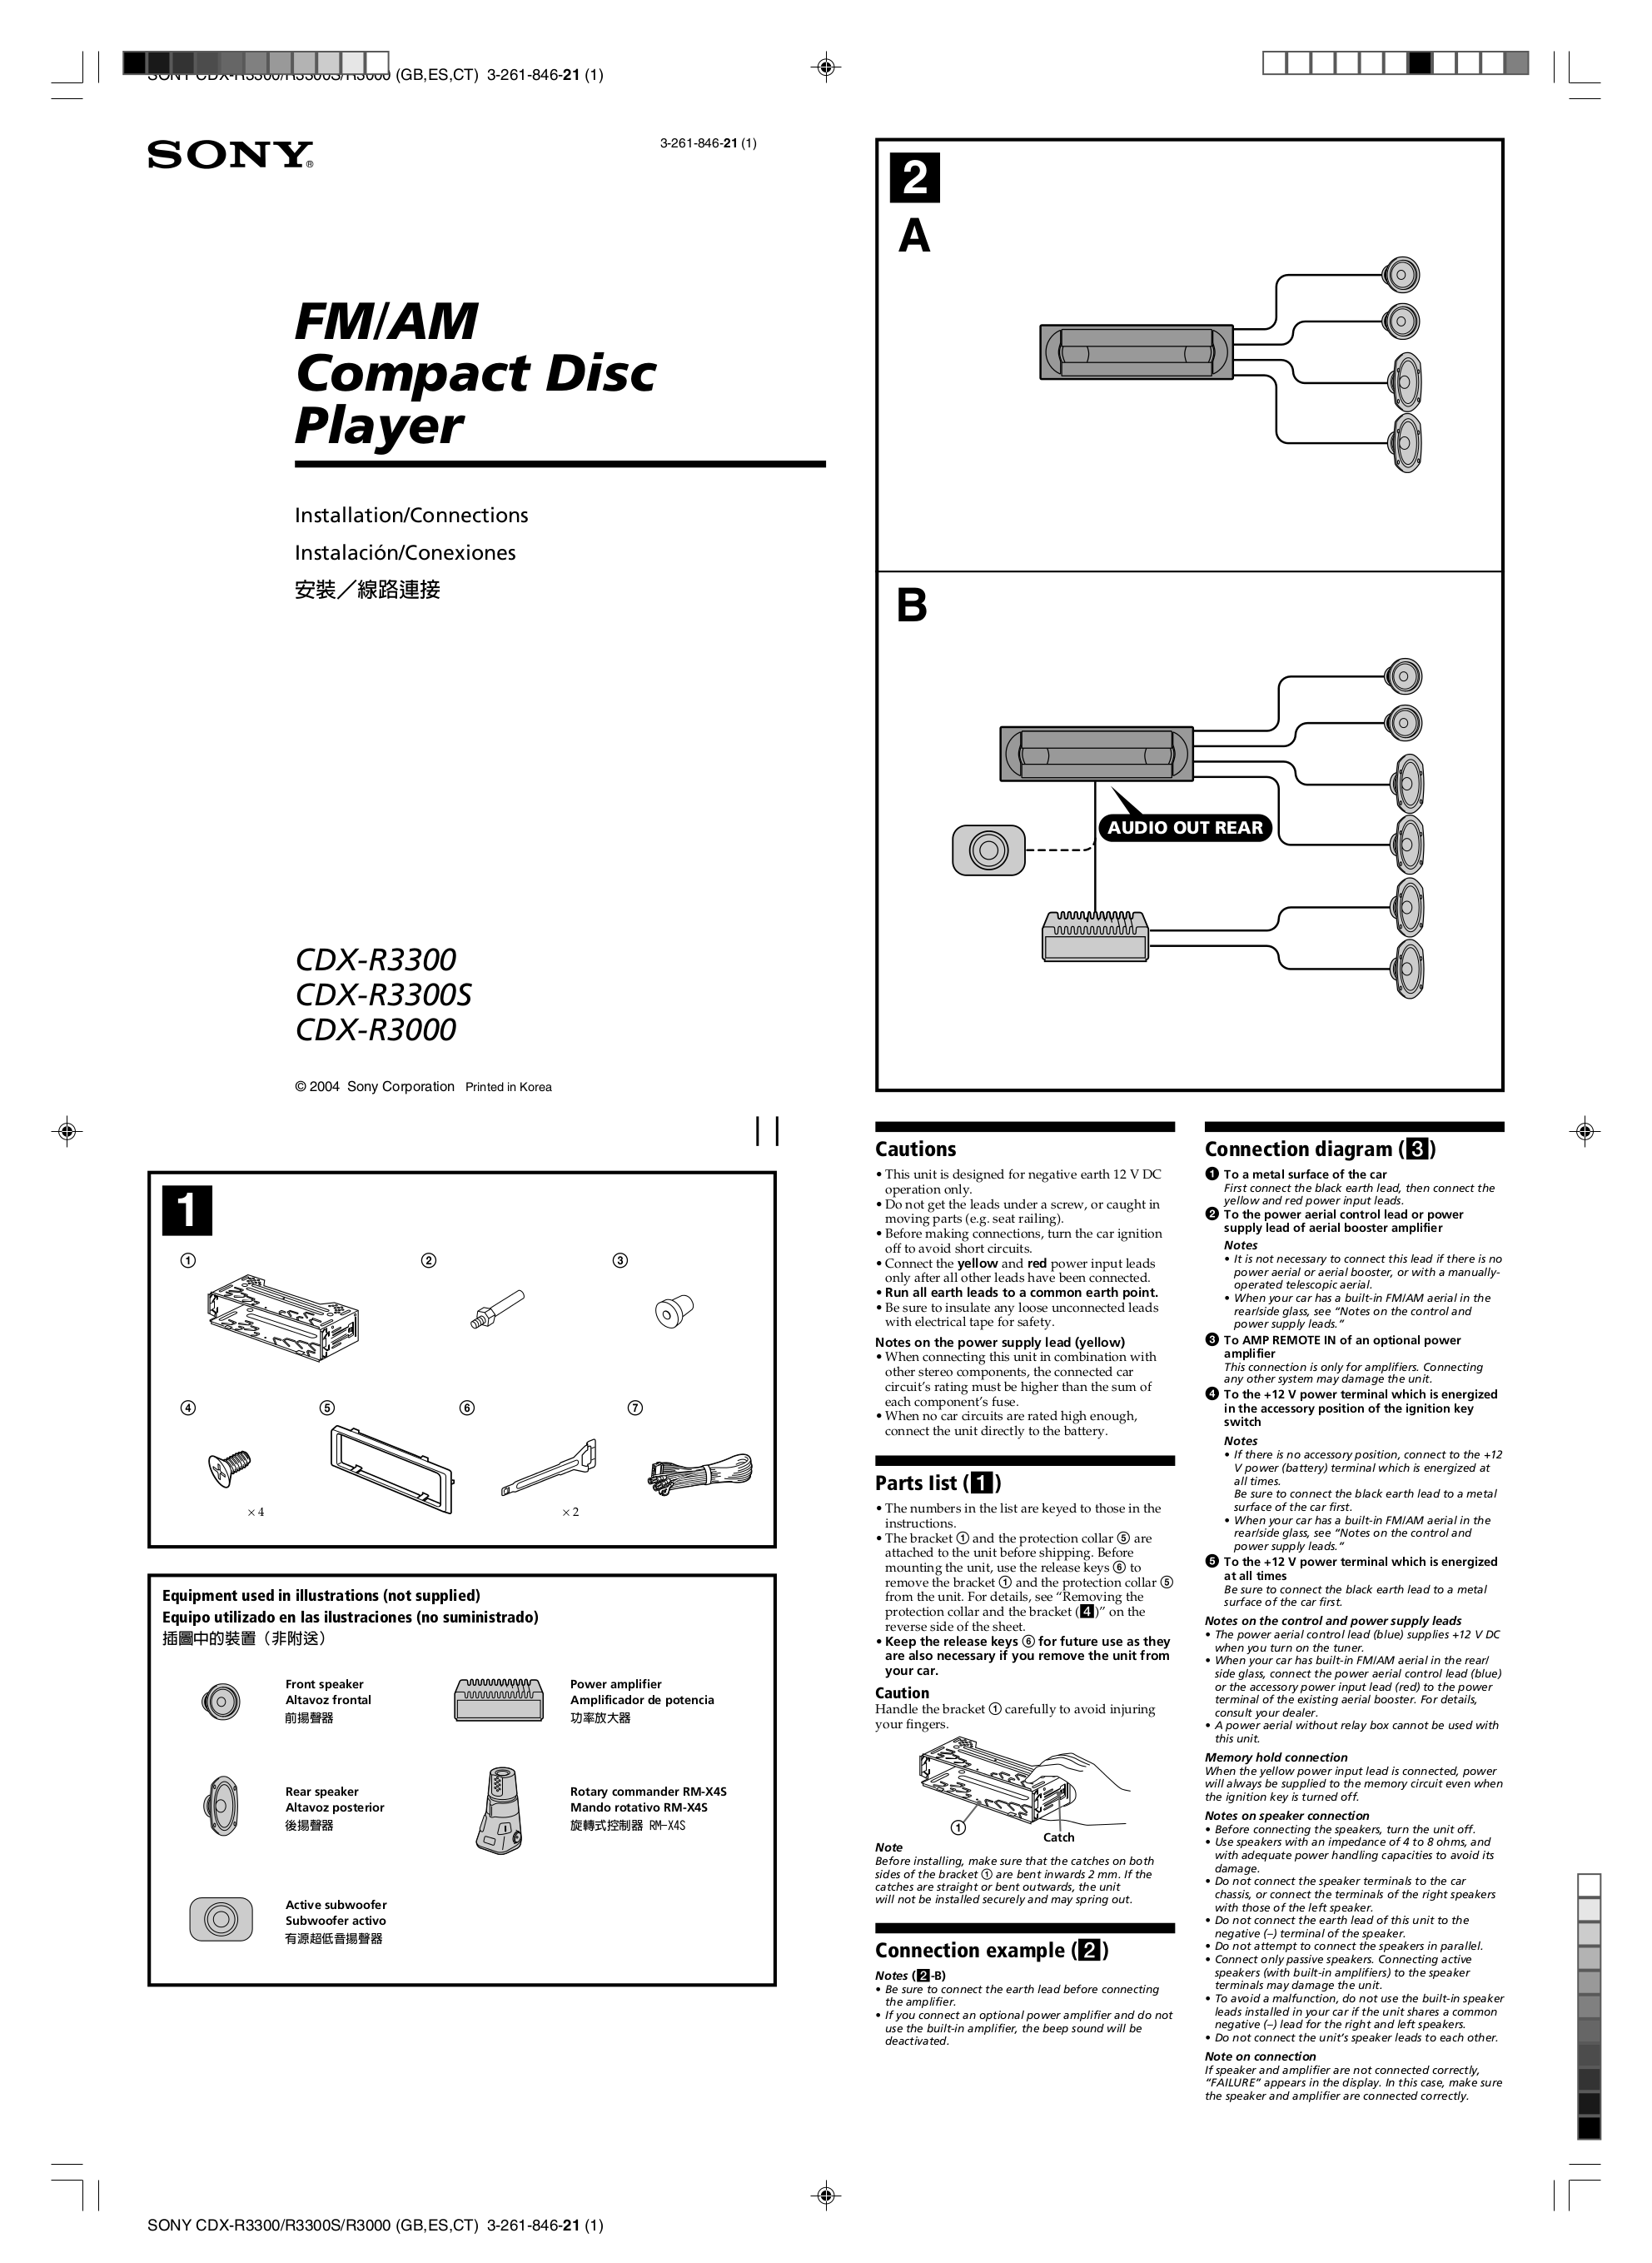 Sony Cdx S2000s Wiring Diagram 30 Images Gt700hd 3261846211pdf 0 R3300 Gt200 Manual U2022